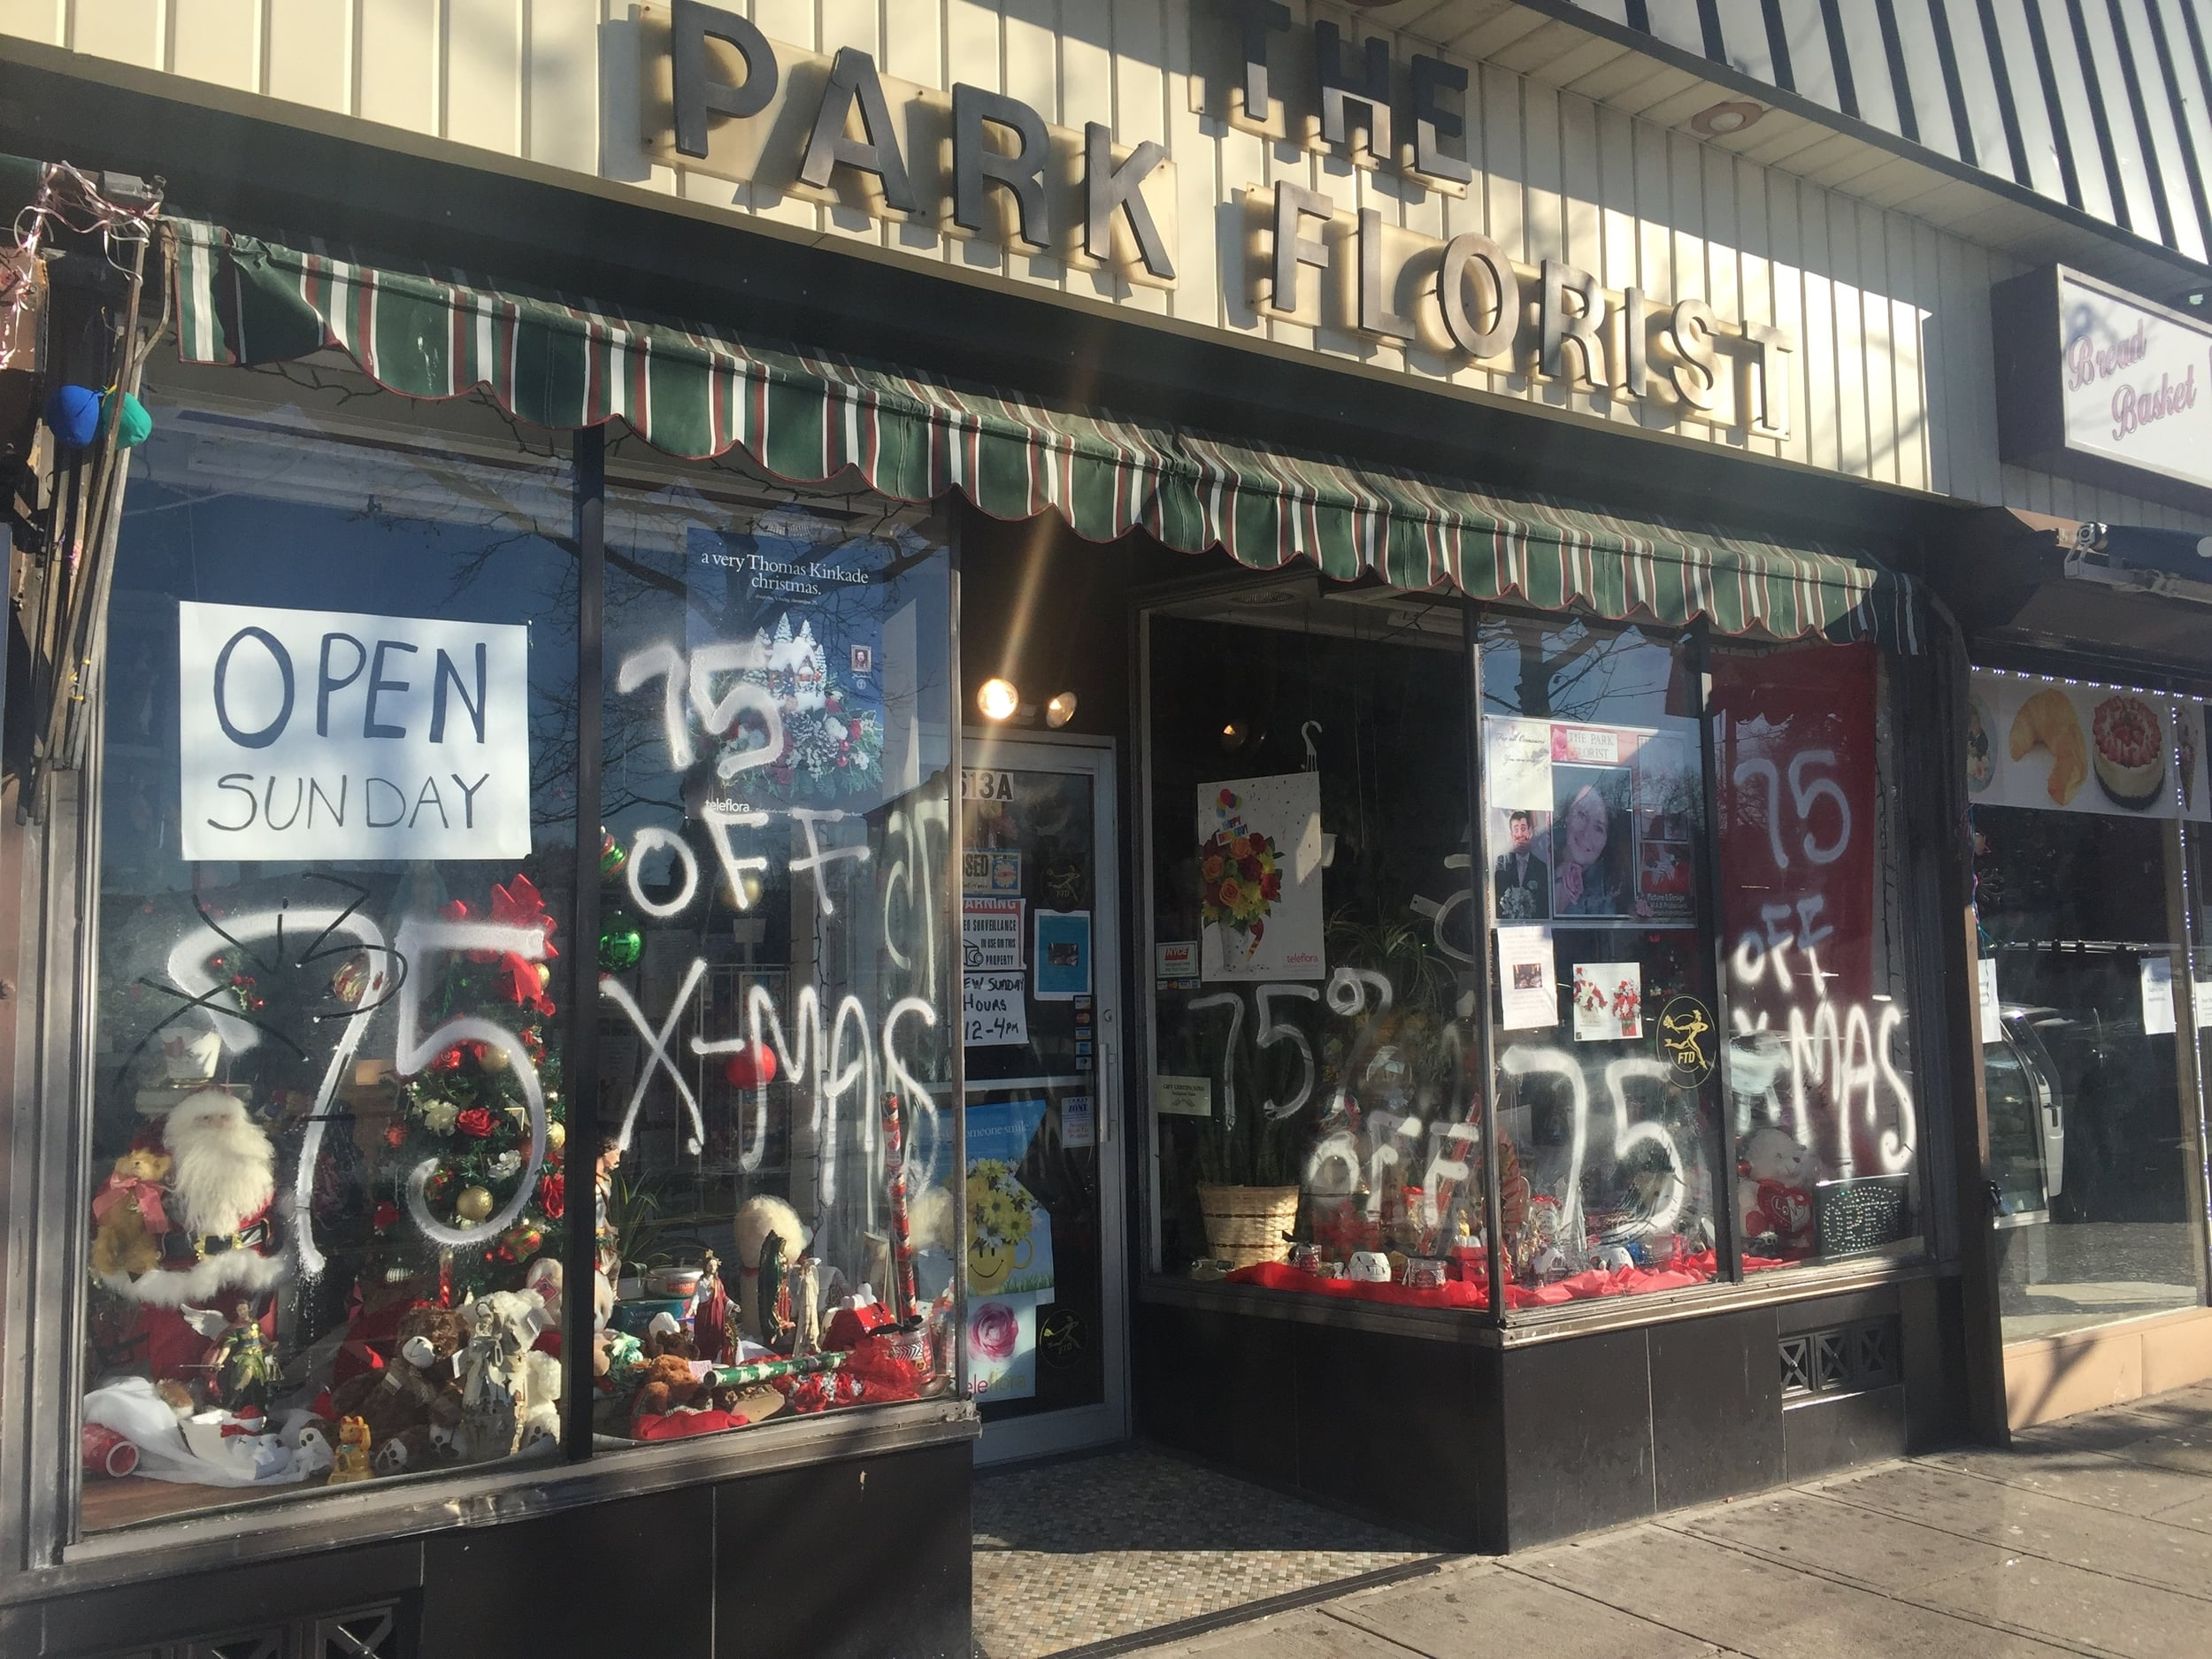 The Park Florist, Park Avenue, Plainfield  has an attractive wall sign, a traditional retractable awning and a well decorated display.